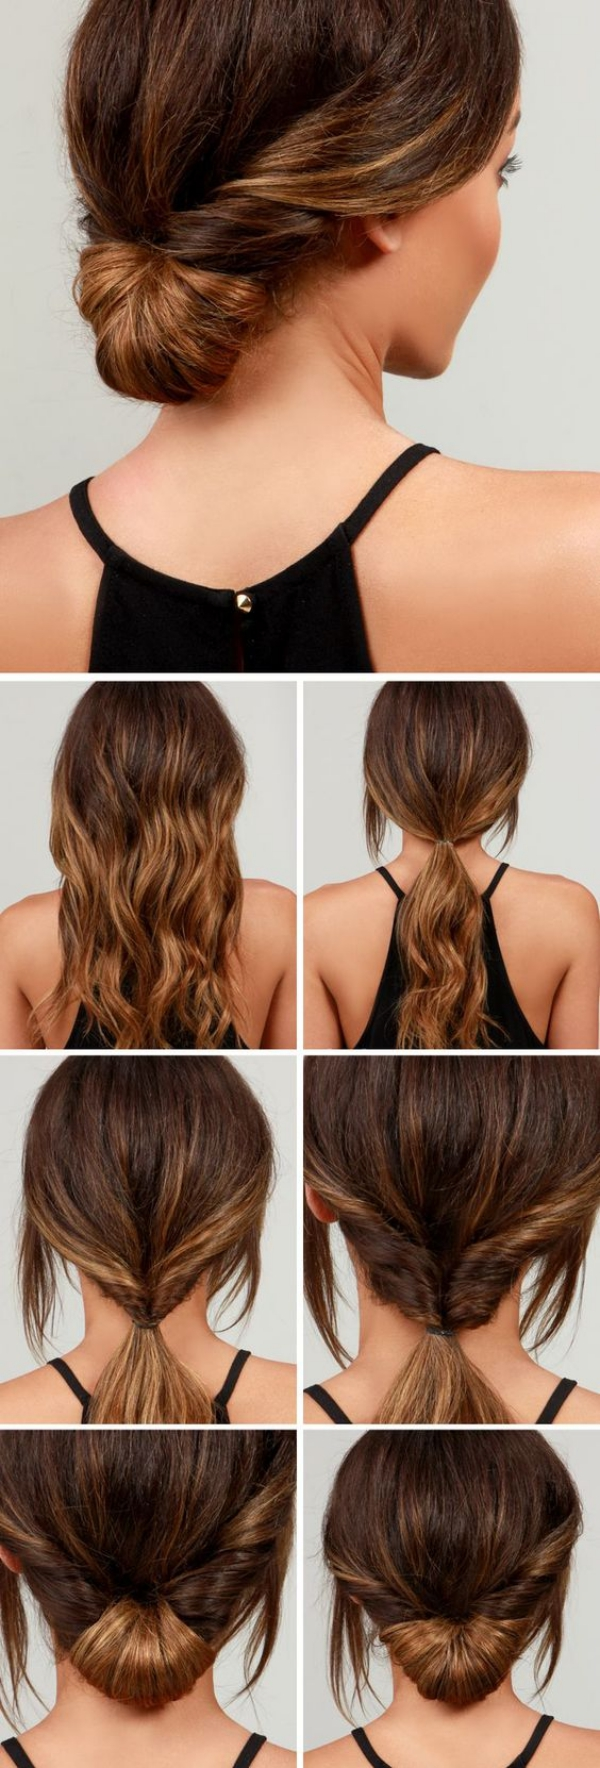 Simple Five Minute Hairstyles00006